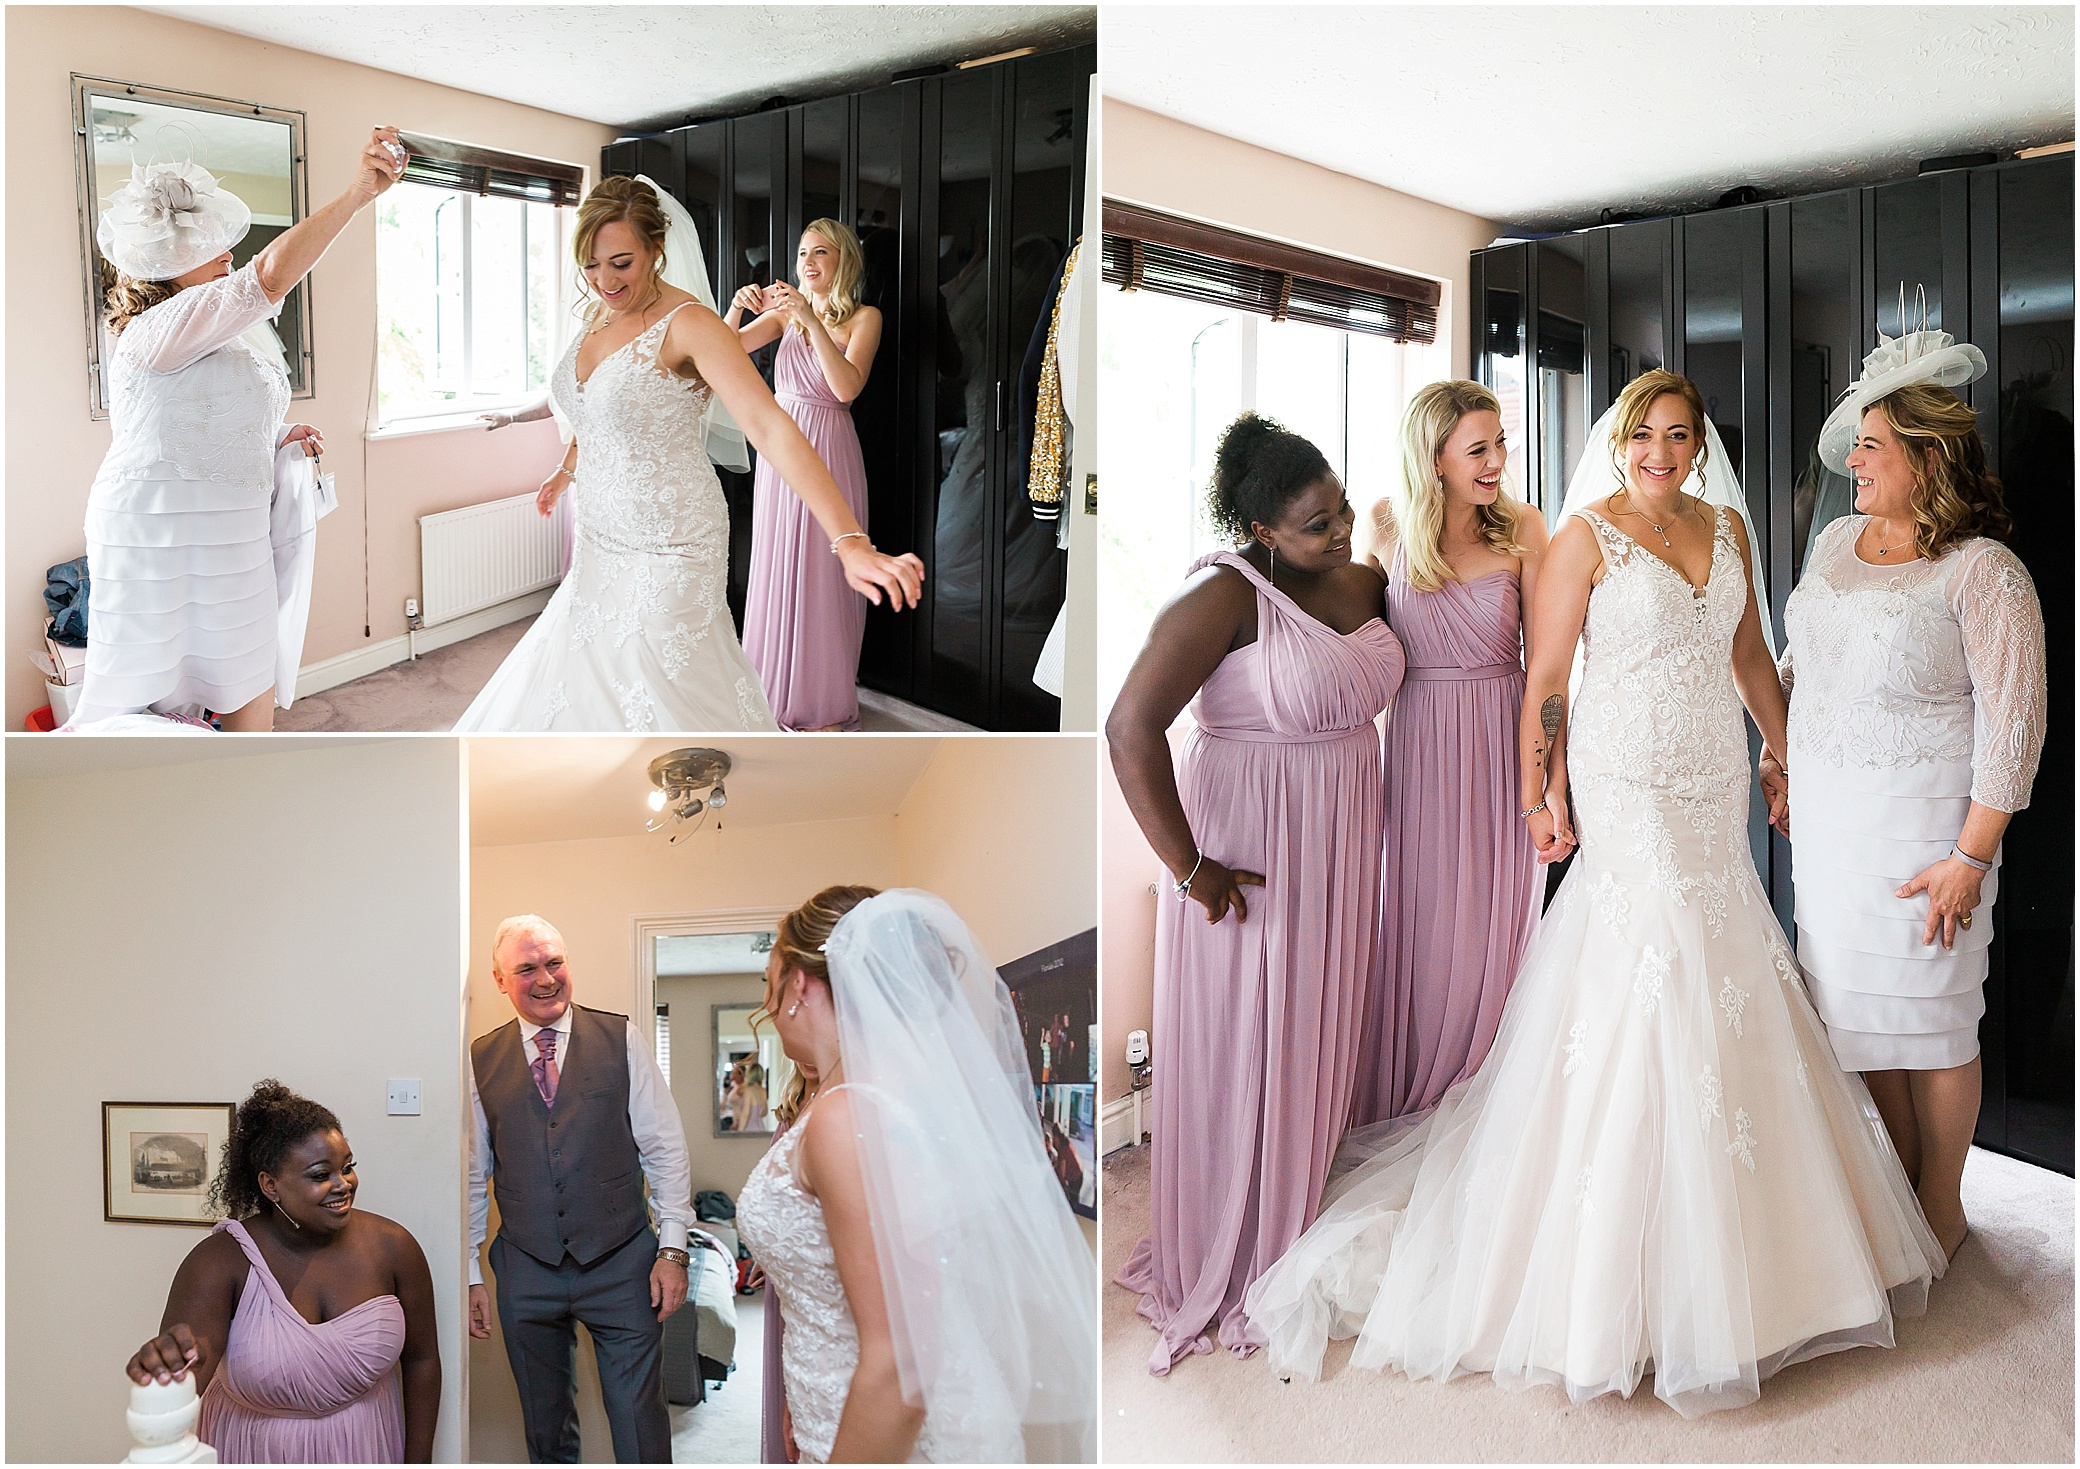 Bridal party getting ready for her wedding in London